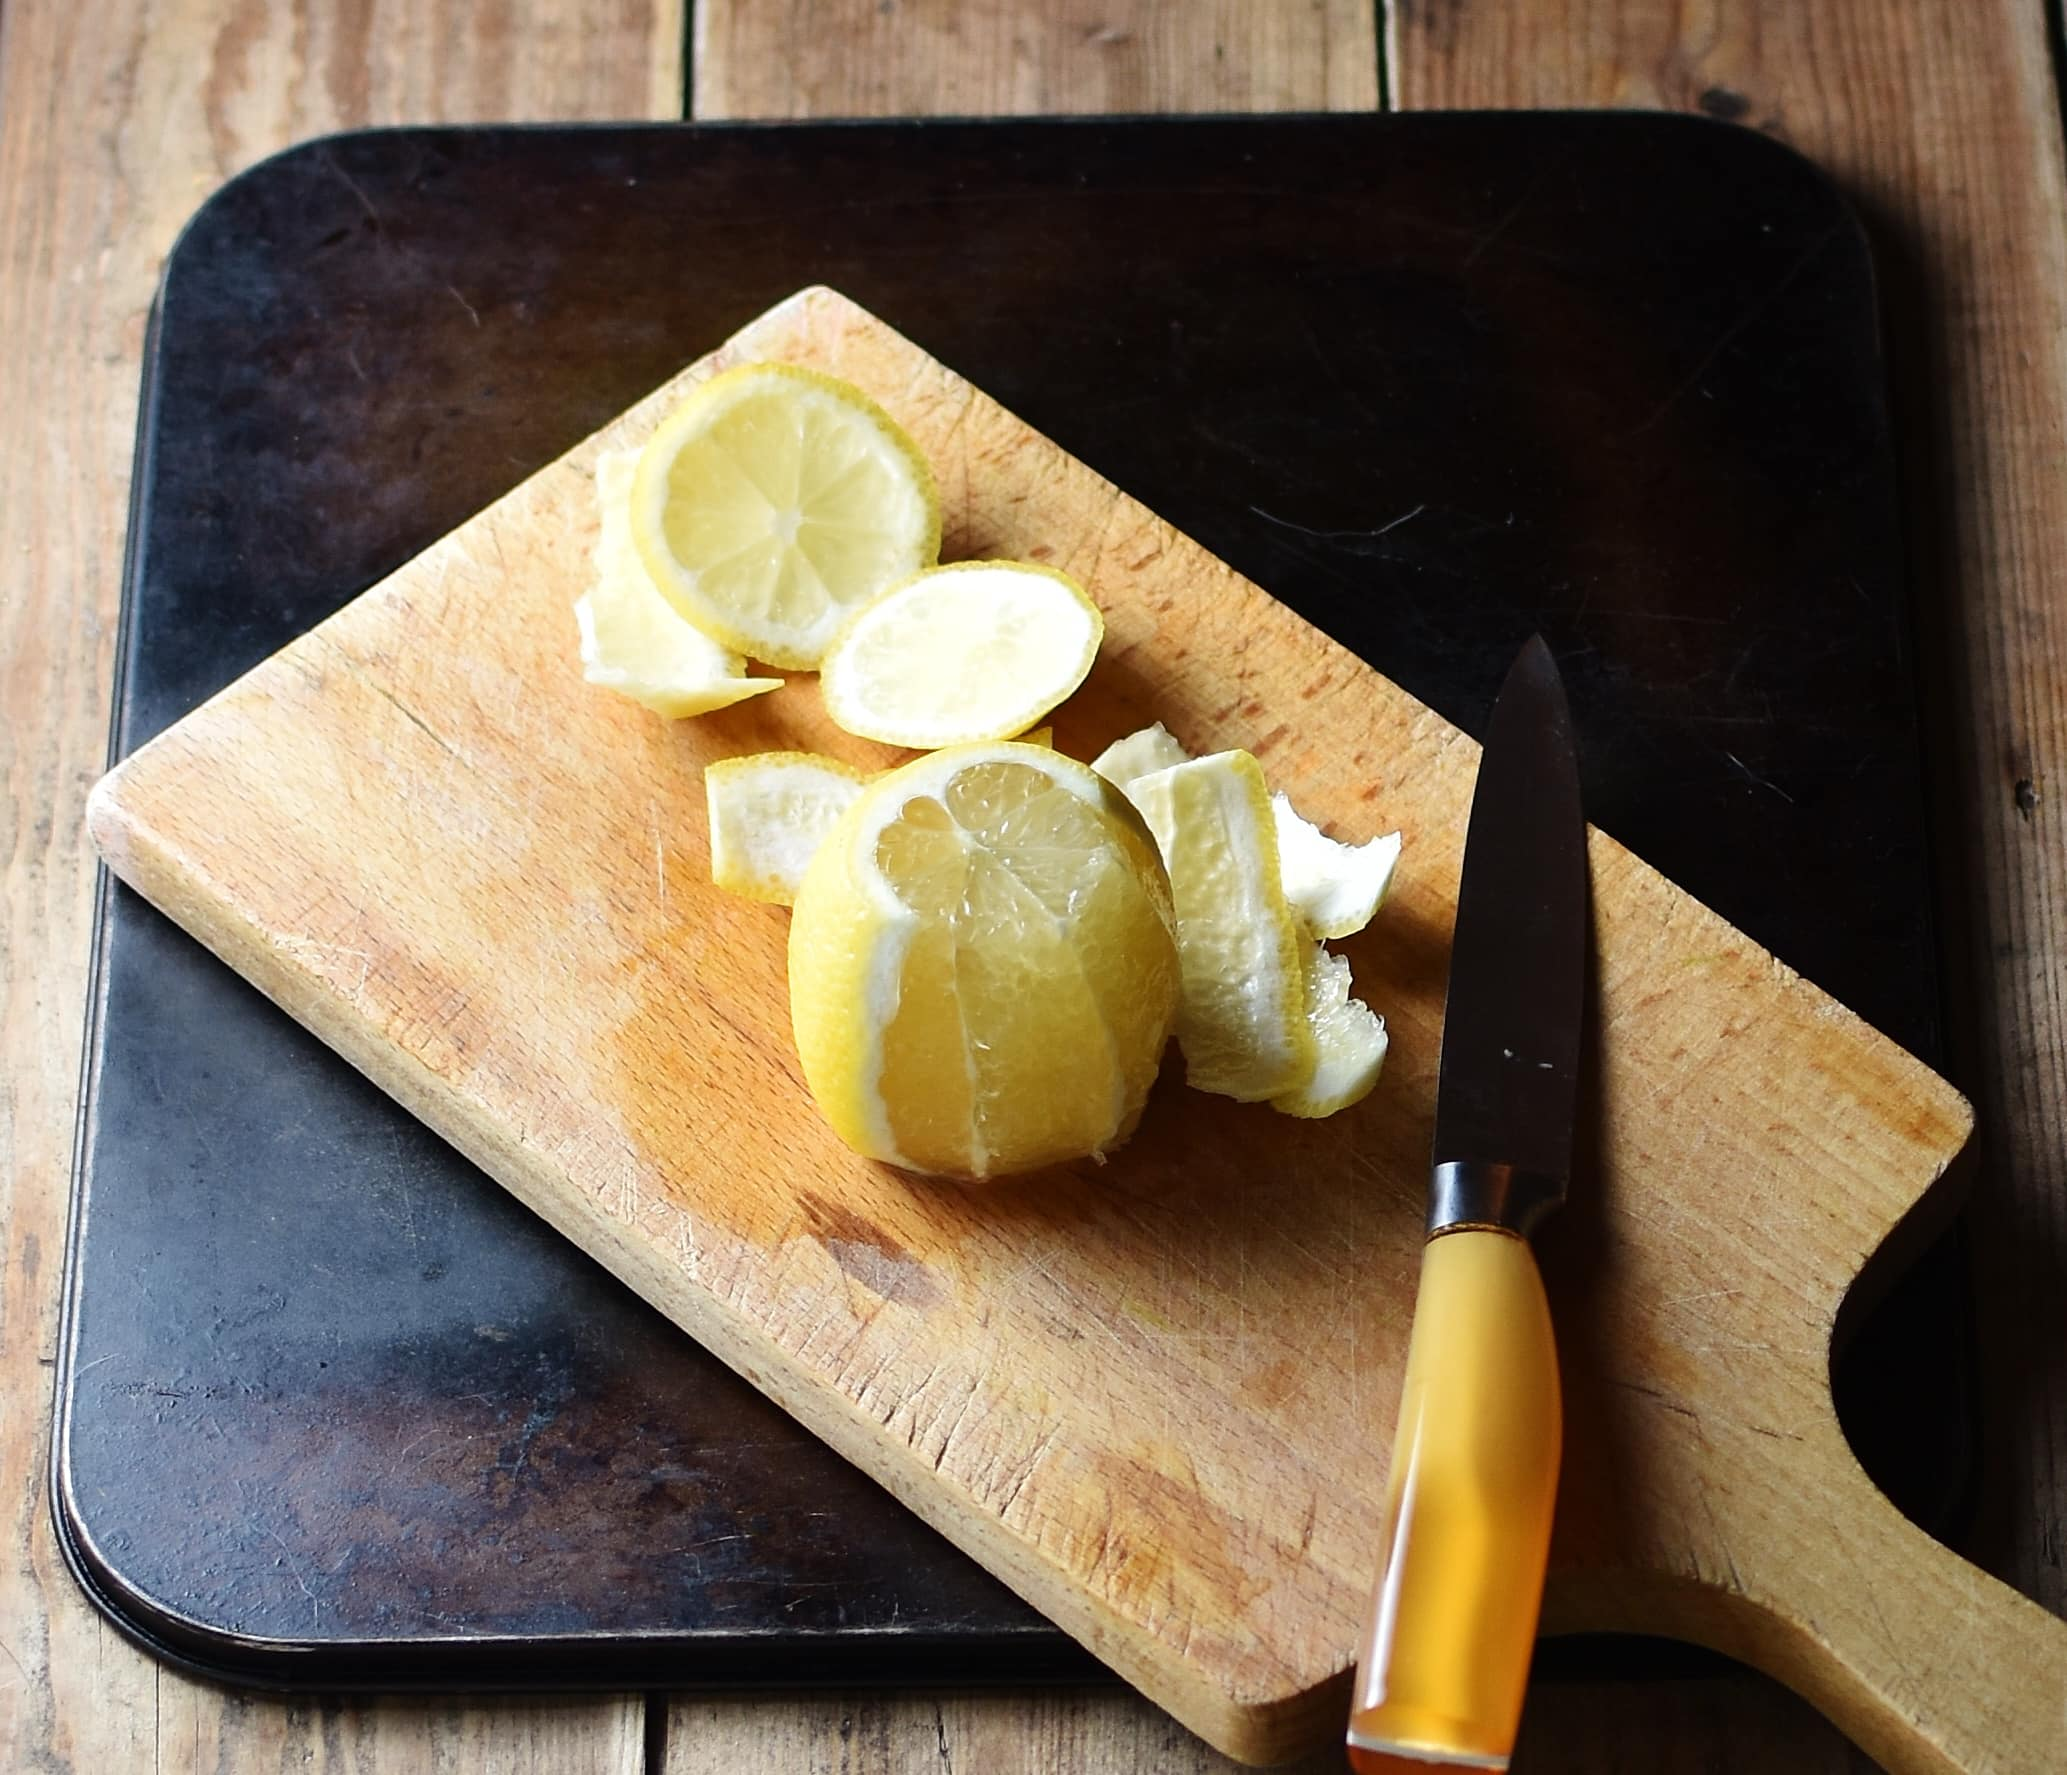 Lemon and peel with knife on top of cutting board.